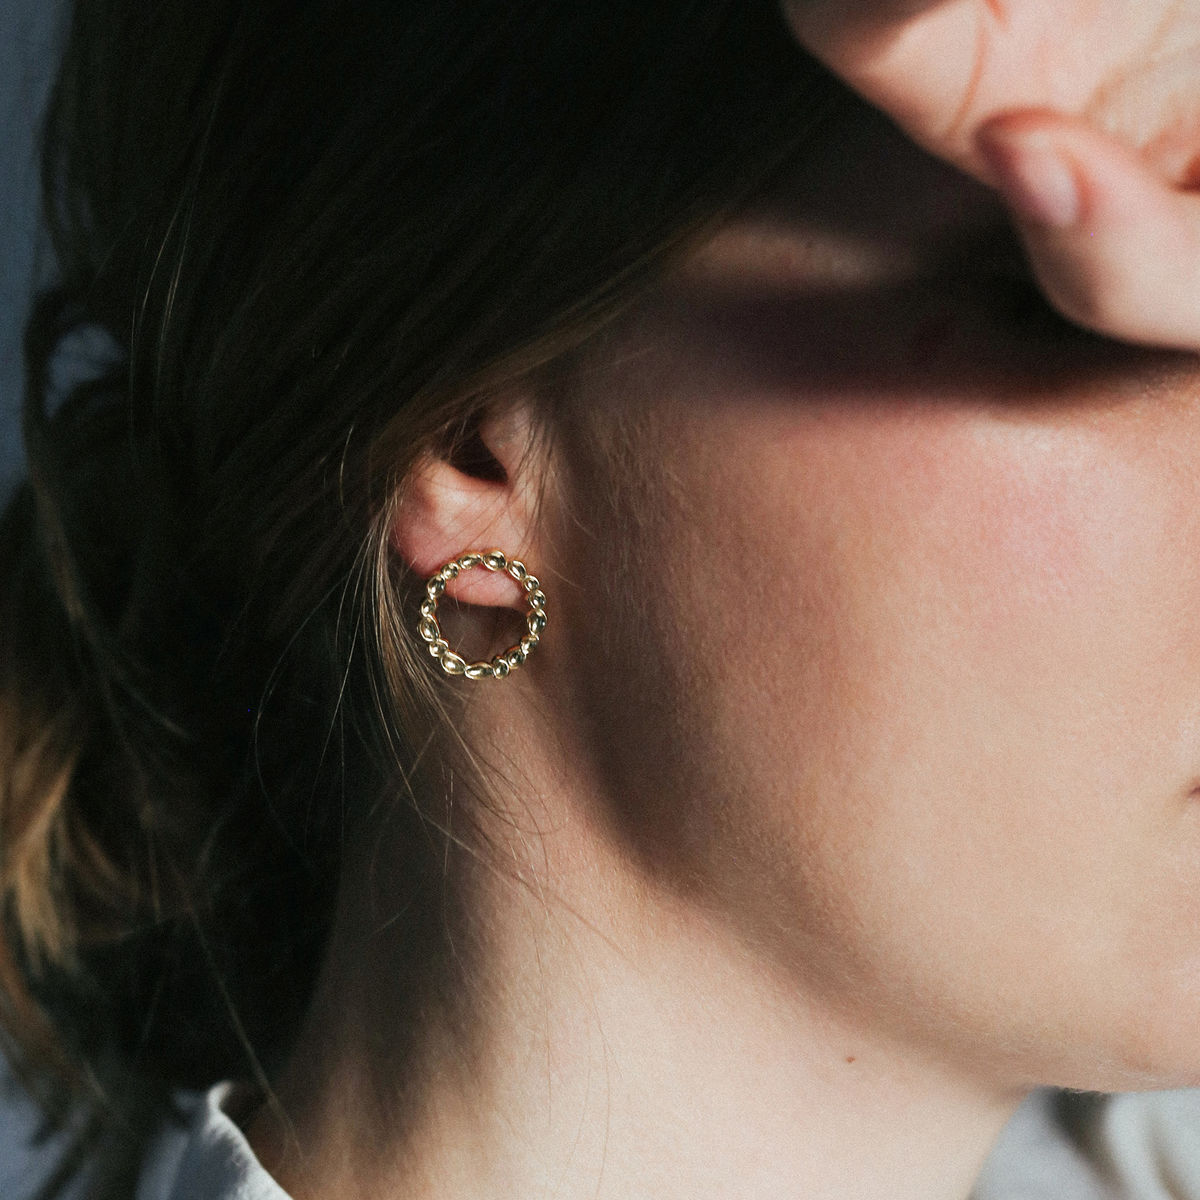 SHIMMER circle stud earrings - gold plated sterling silver - product images  of